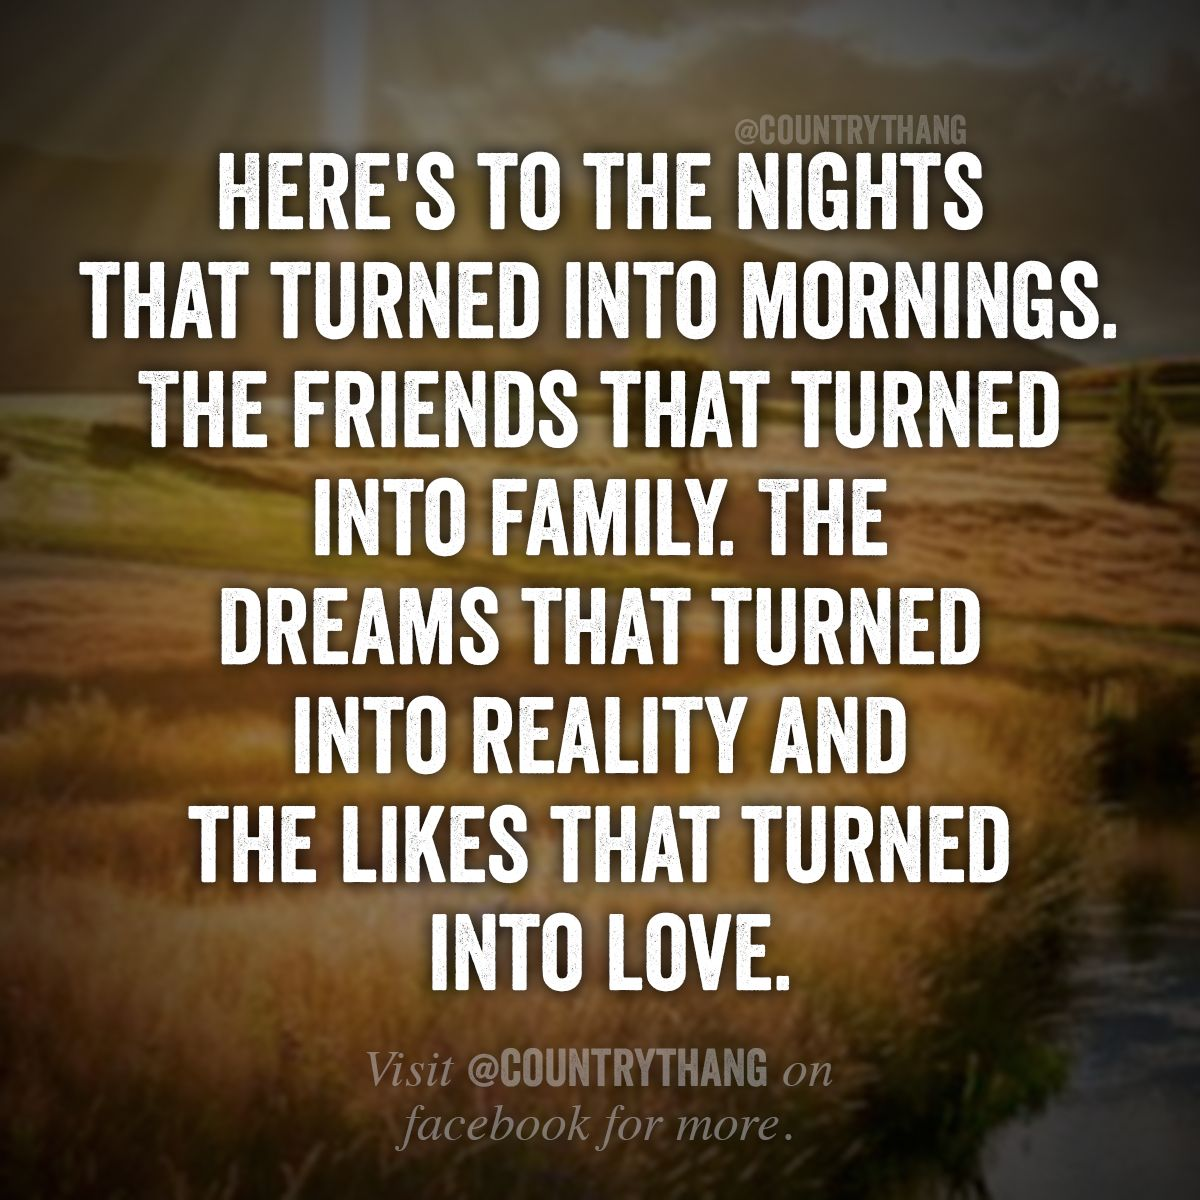 Quotes About Friendship Turning To Love Here's To The Nights That Turned Into Morningsthe Friends That